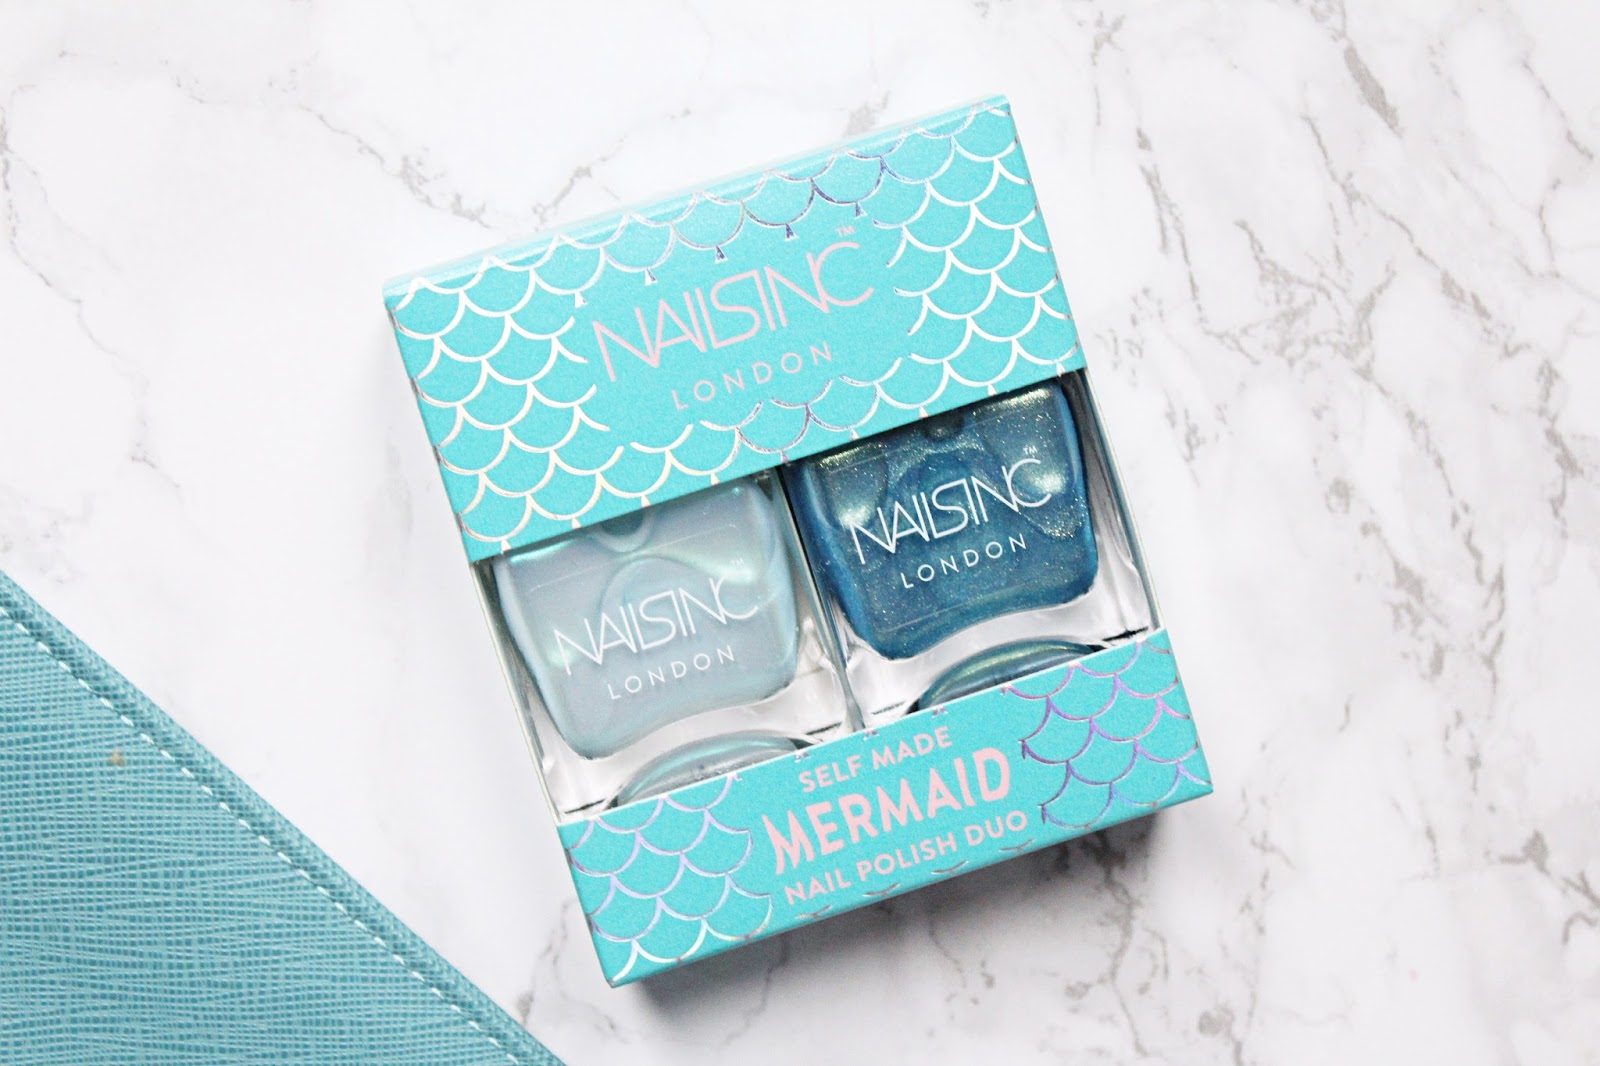 Nails Inc Self-Made Mermaid Nail Polish Duo Review